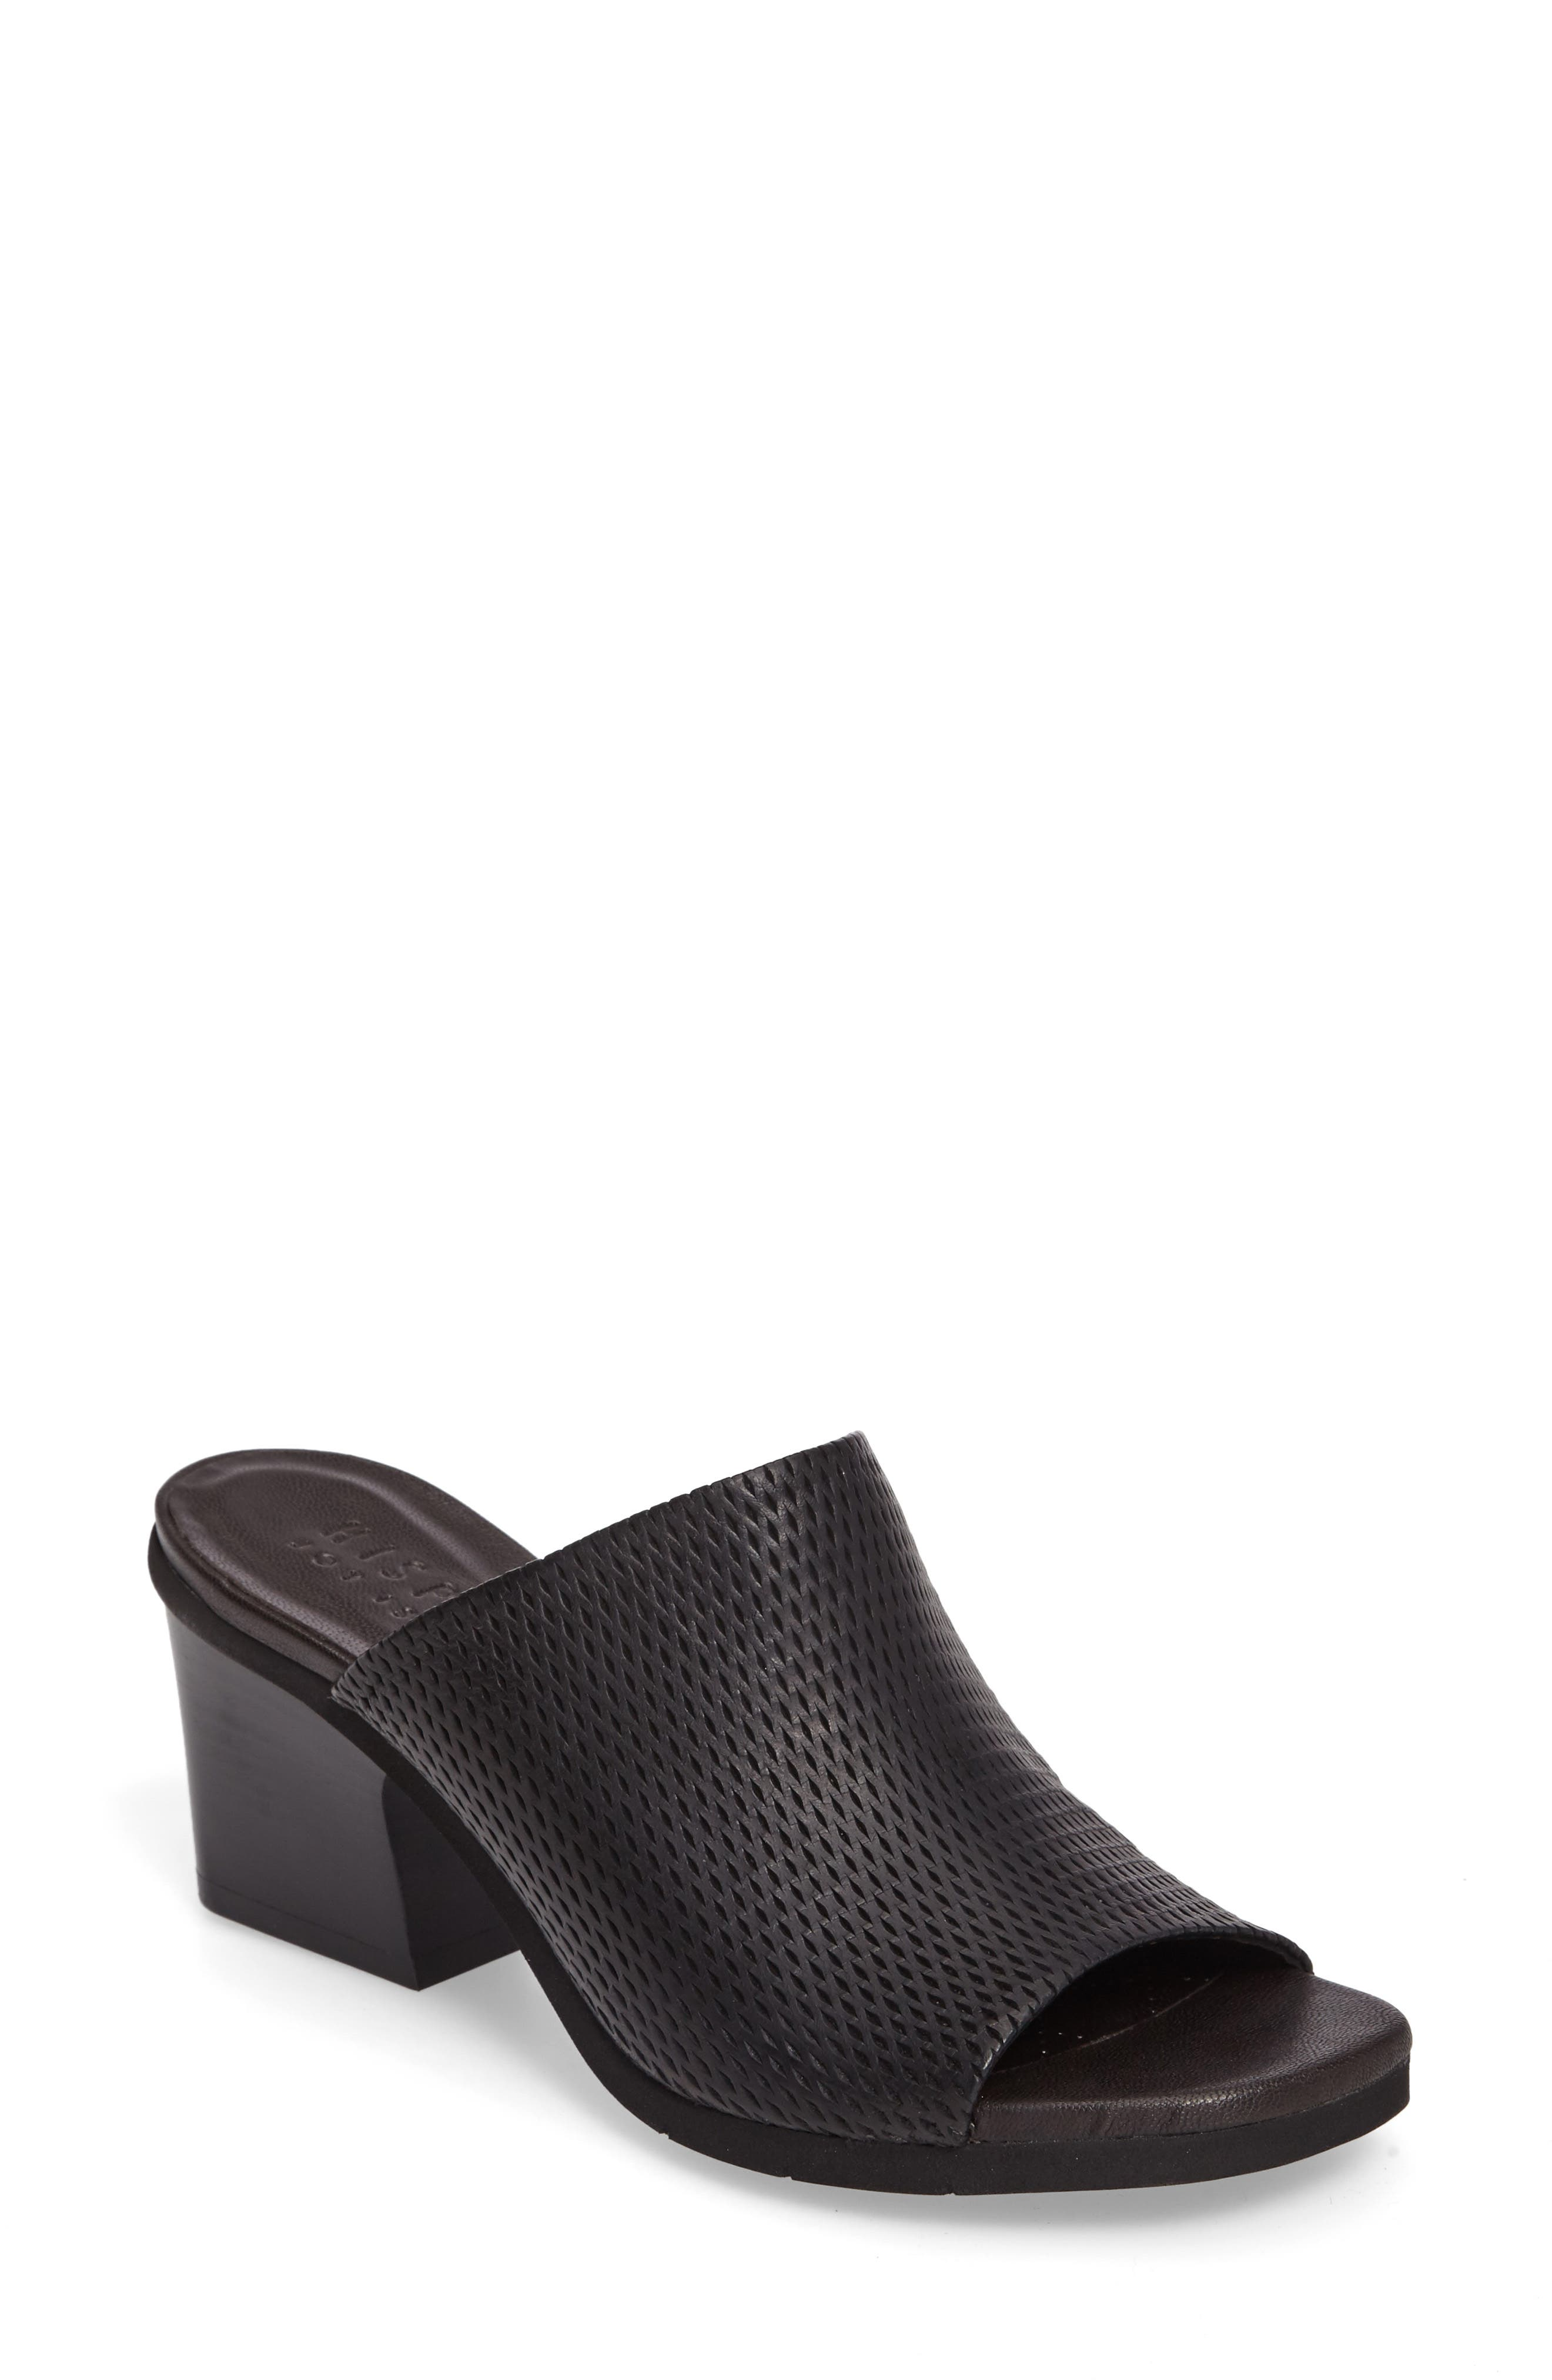 Udora Perforated Mule,                         Main,                         color, Keops Black Leather